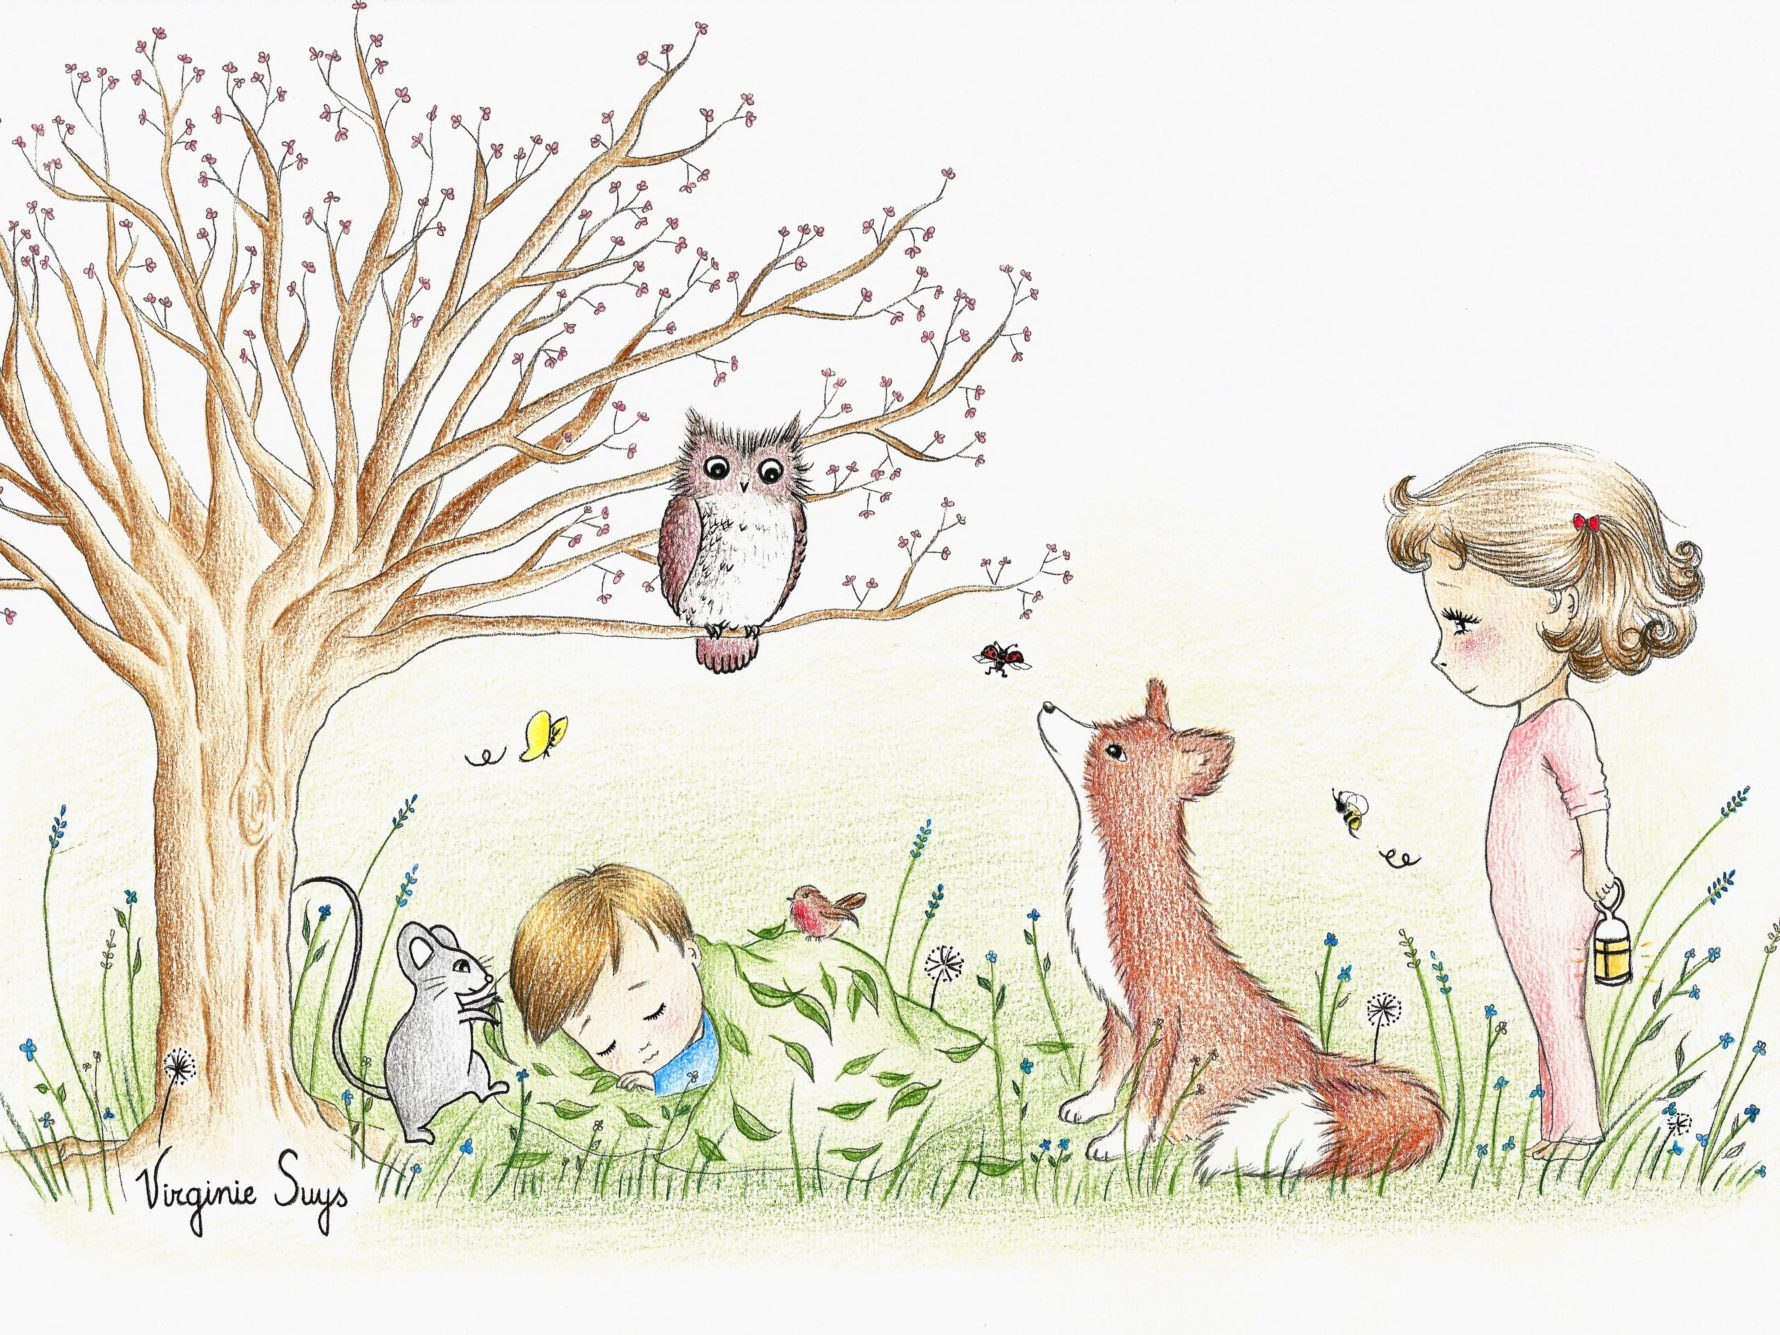 Virginie Suys Dreams in the forest in green & brown illustration